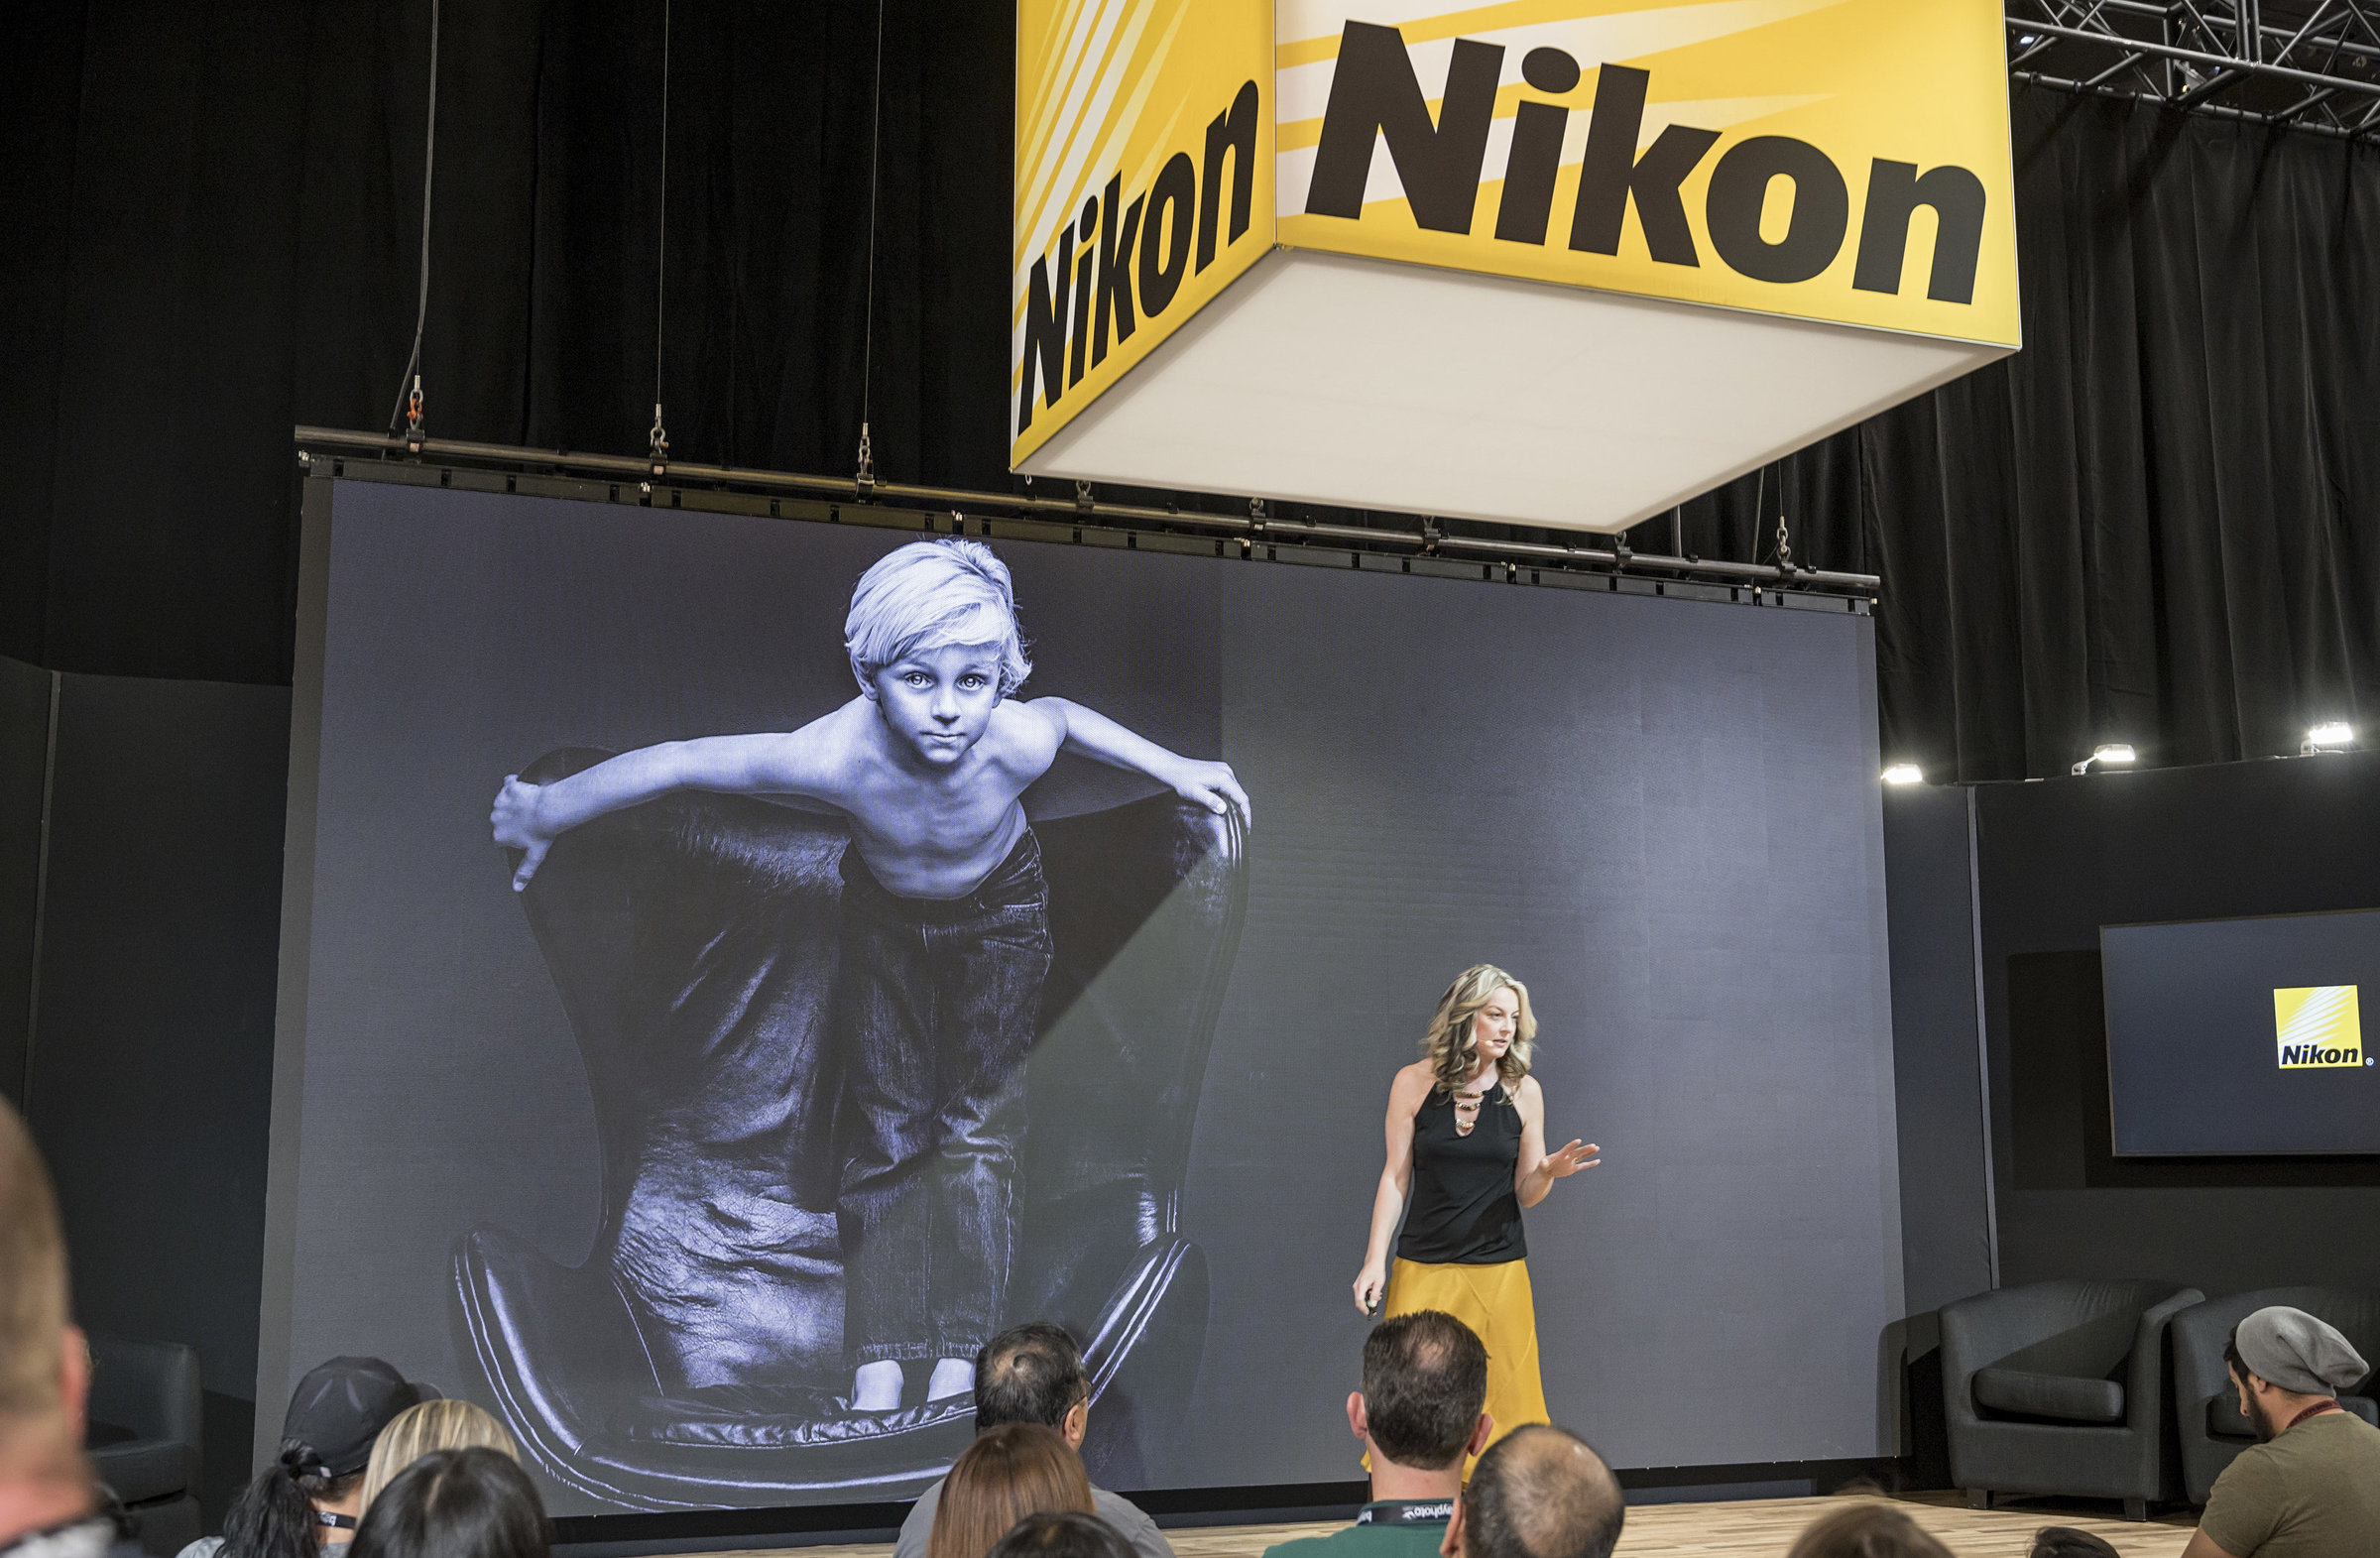 Julia Kelleher. Nikon Ambassador. Speaking at WPPI